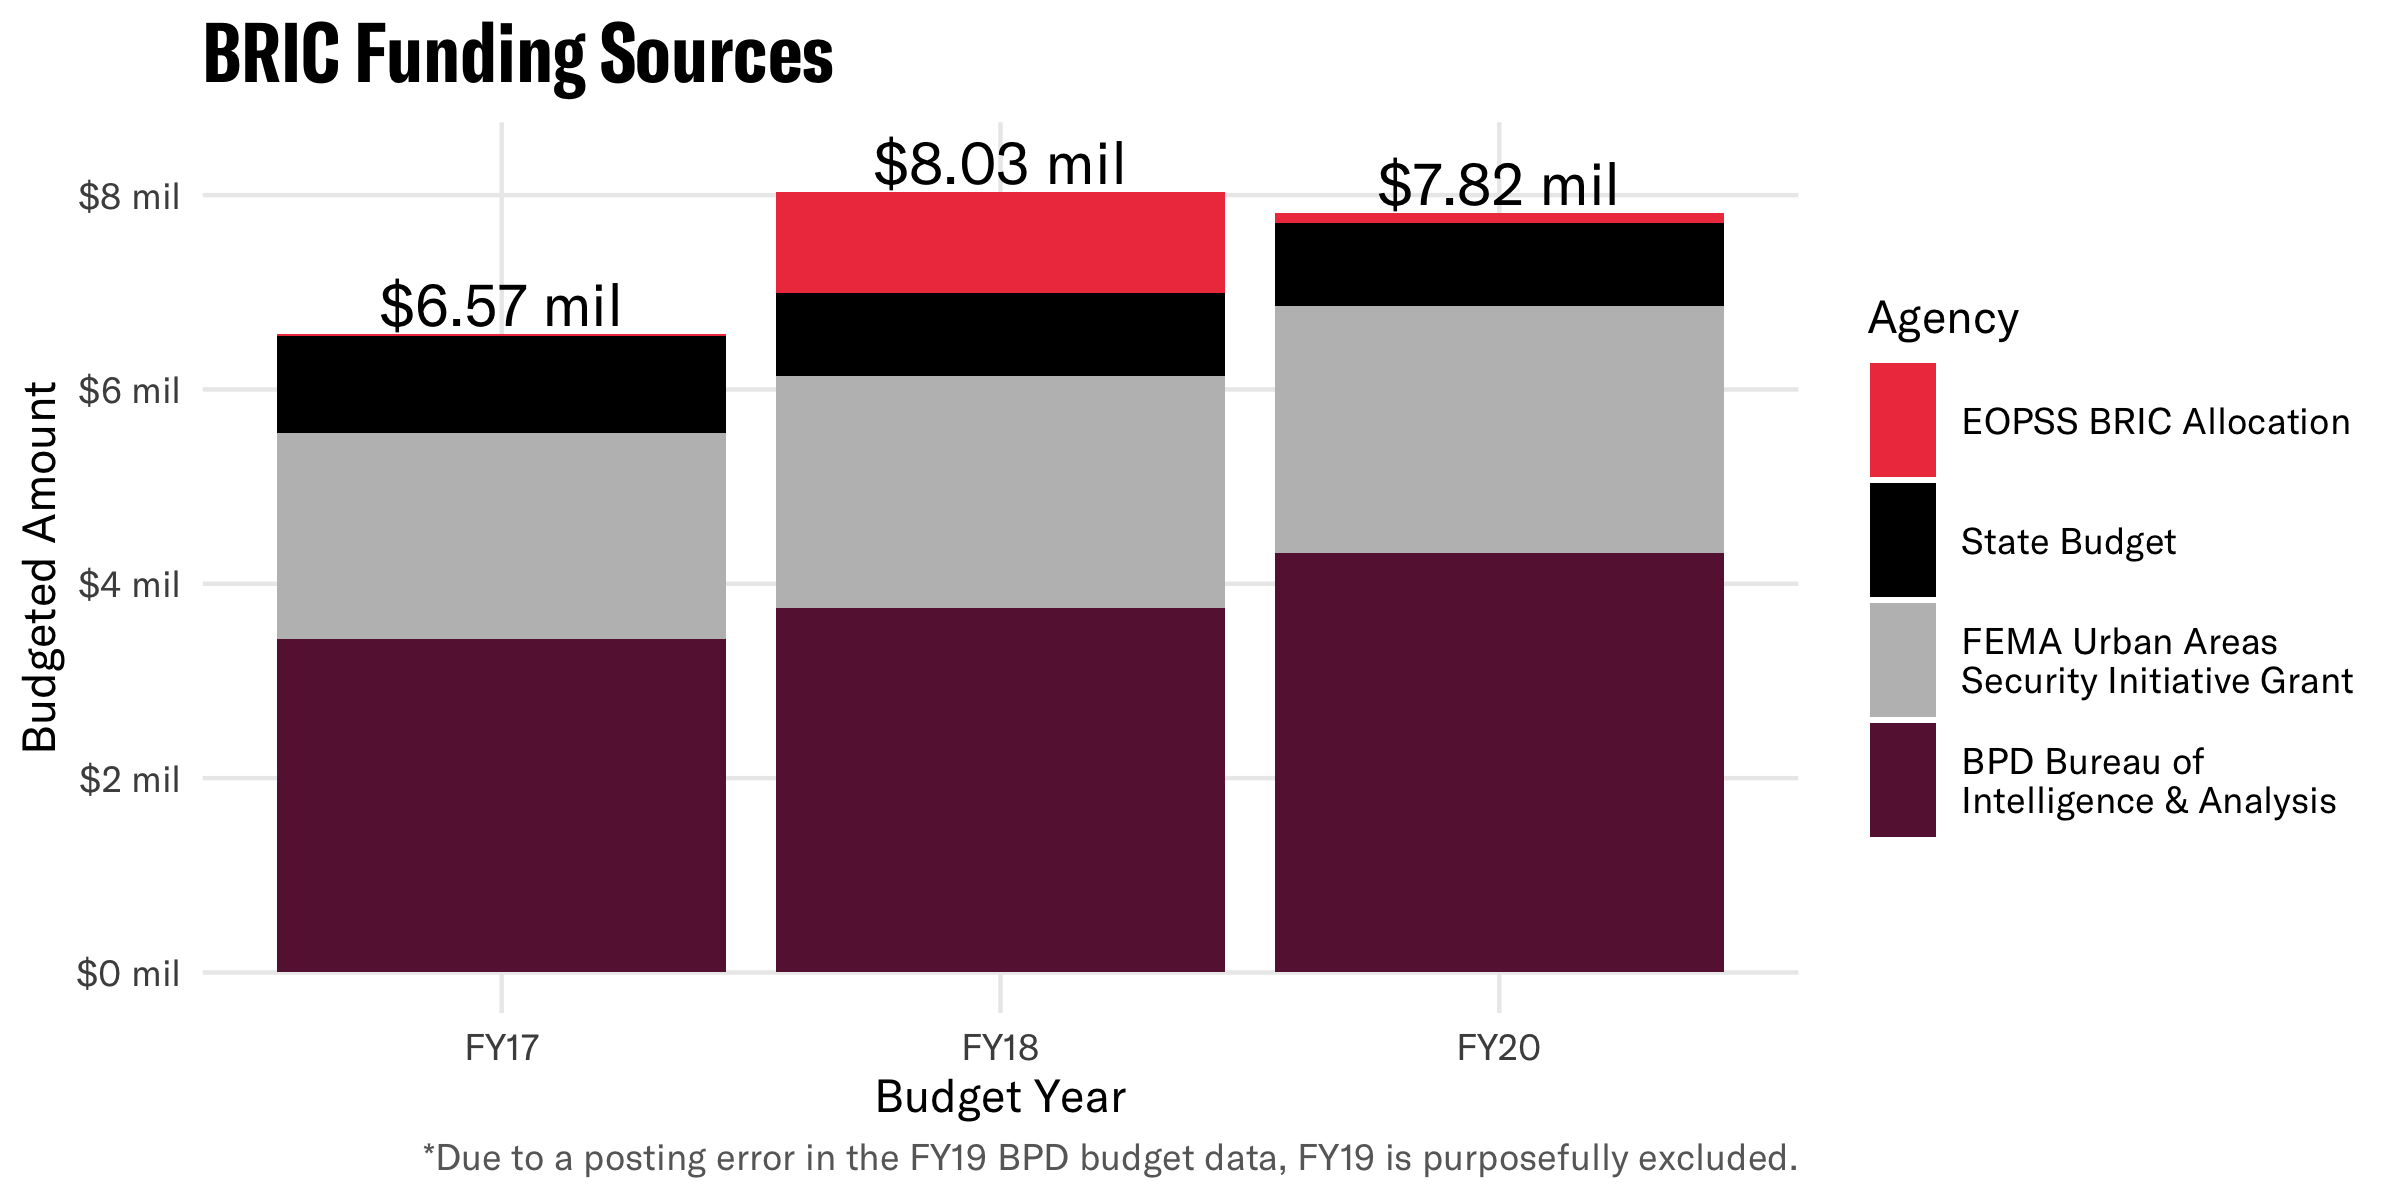 Bar chart showing the various sources of BRIC funding in FY17, FY18, and FY20.